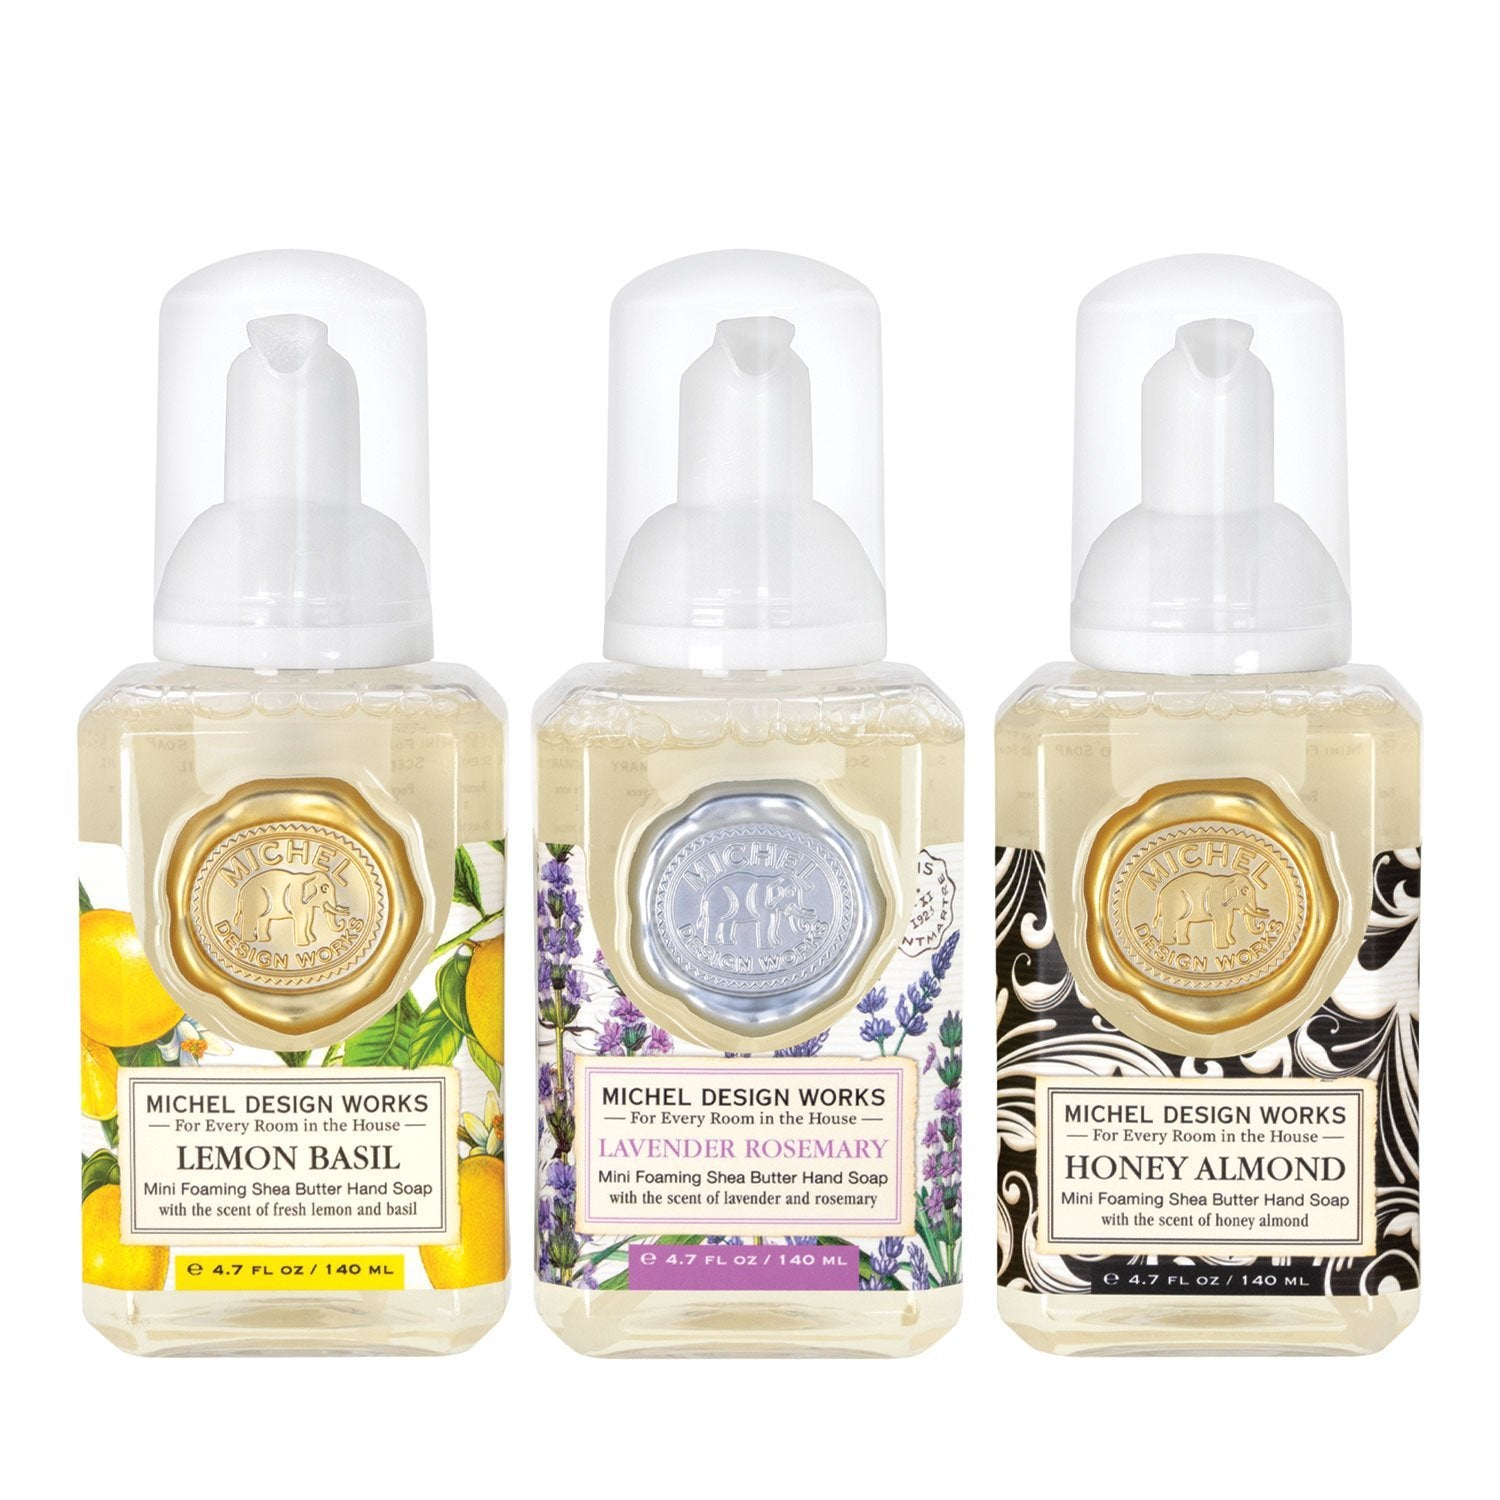 This mini foaming hand soap set is the perfect way to try several of Michel Designs fragrances! The set features the popular Lemon Basil, Lavender Rosemary and Honey Almond scents, and contains shea butter and aloe vera for gentle cleansing and moisturizing.